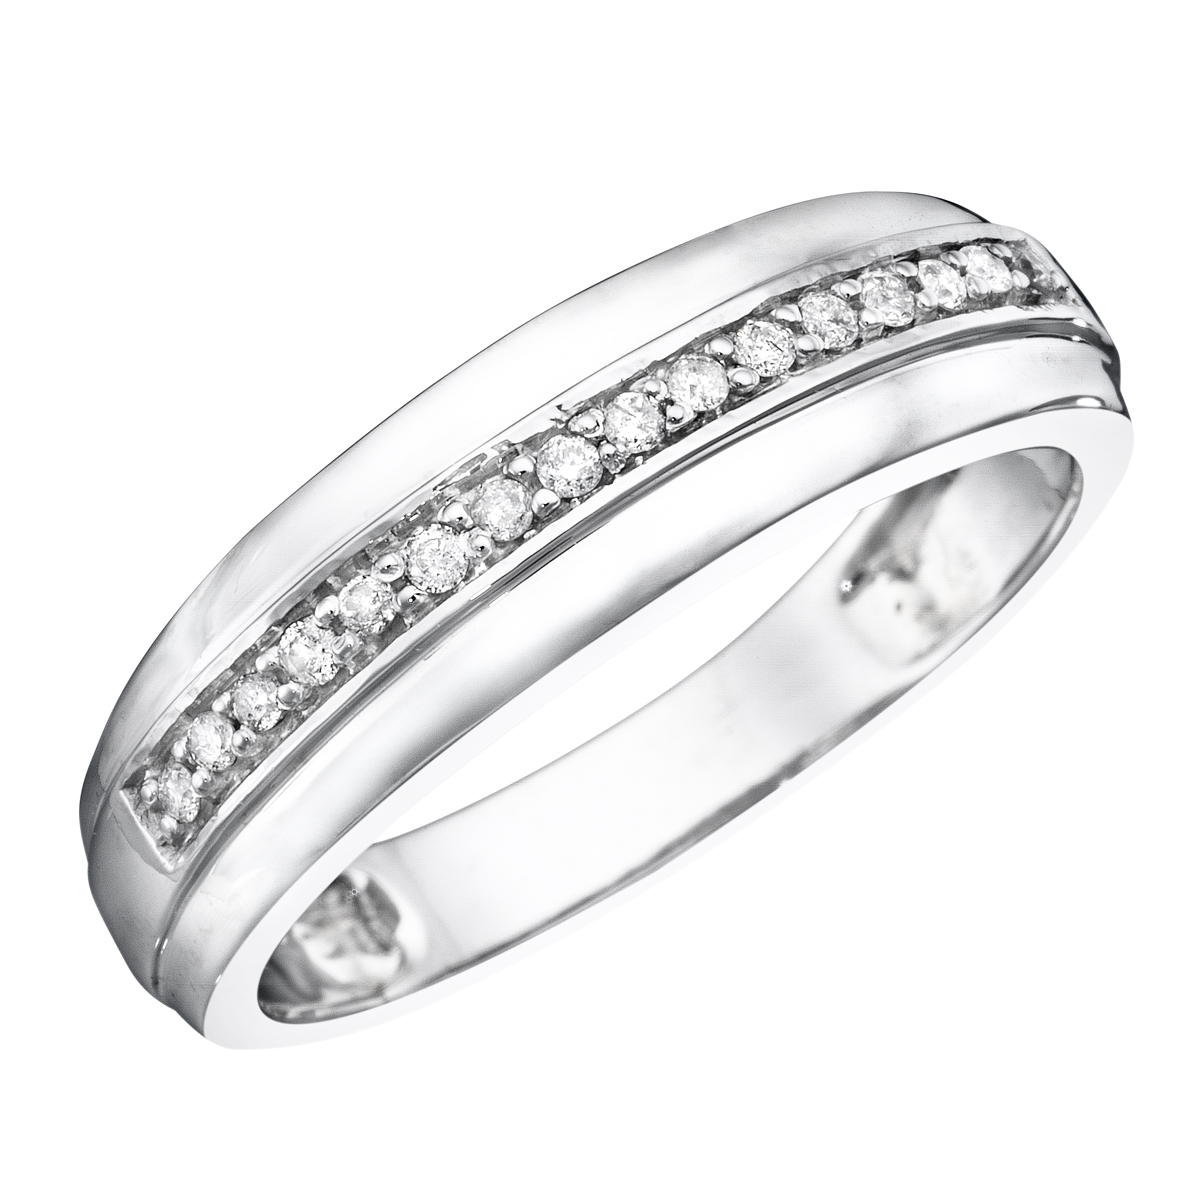 15 CT TW Diamond Mens Wedding Band 14K White Gold My Trio